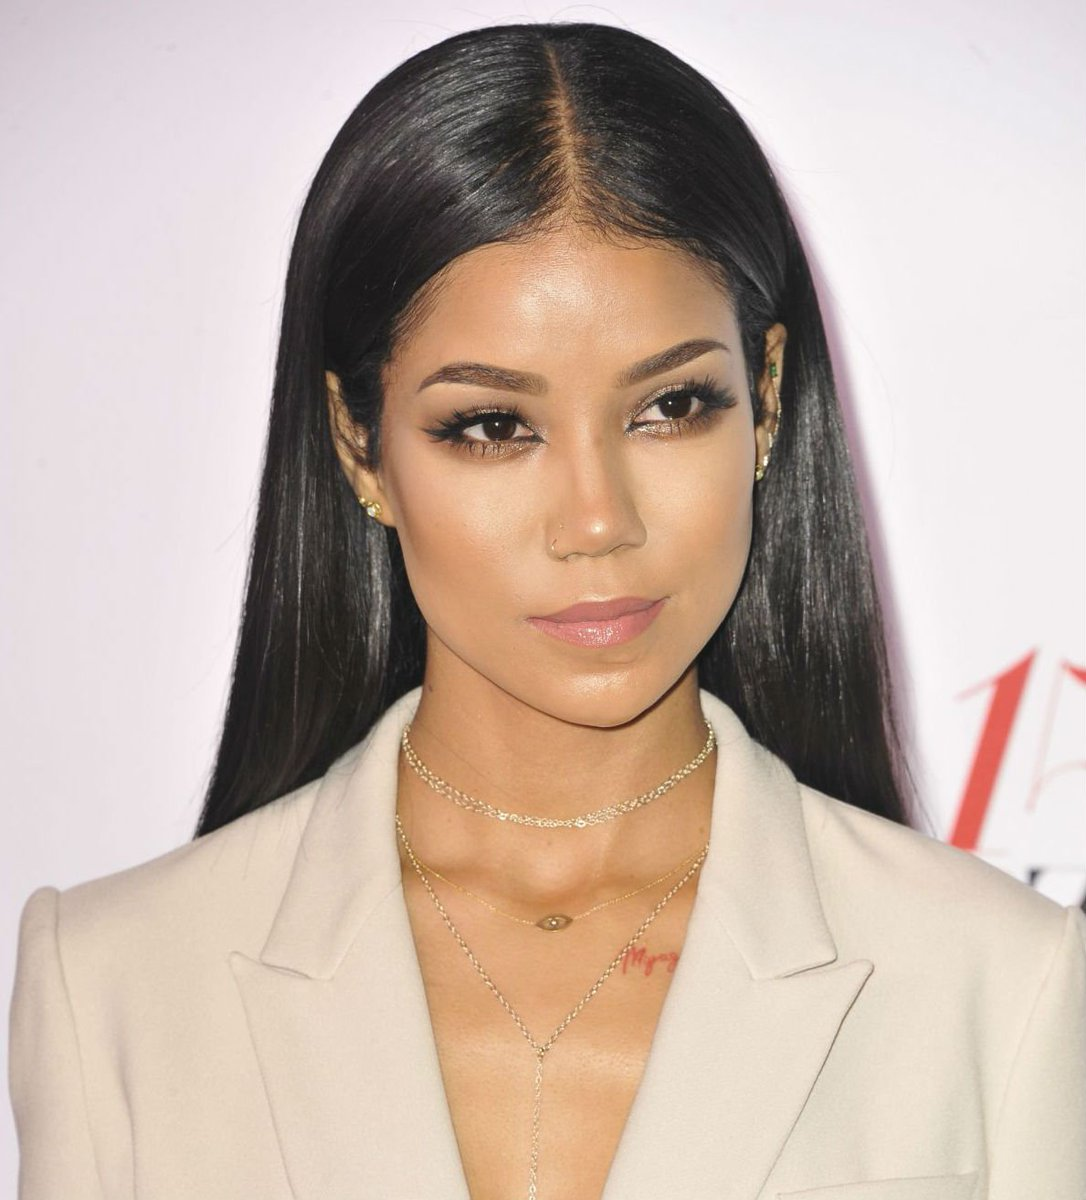 .@JheneAiko has a new album on the way (and i'm beyond excited!): https://t.co/GNPmLf6g91 https://t.co/jVku7G66Kf